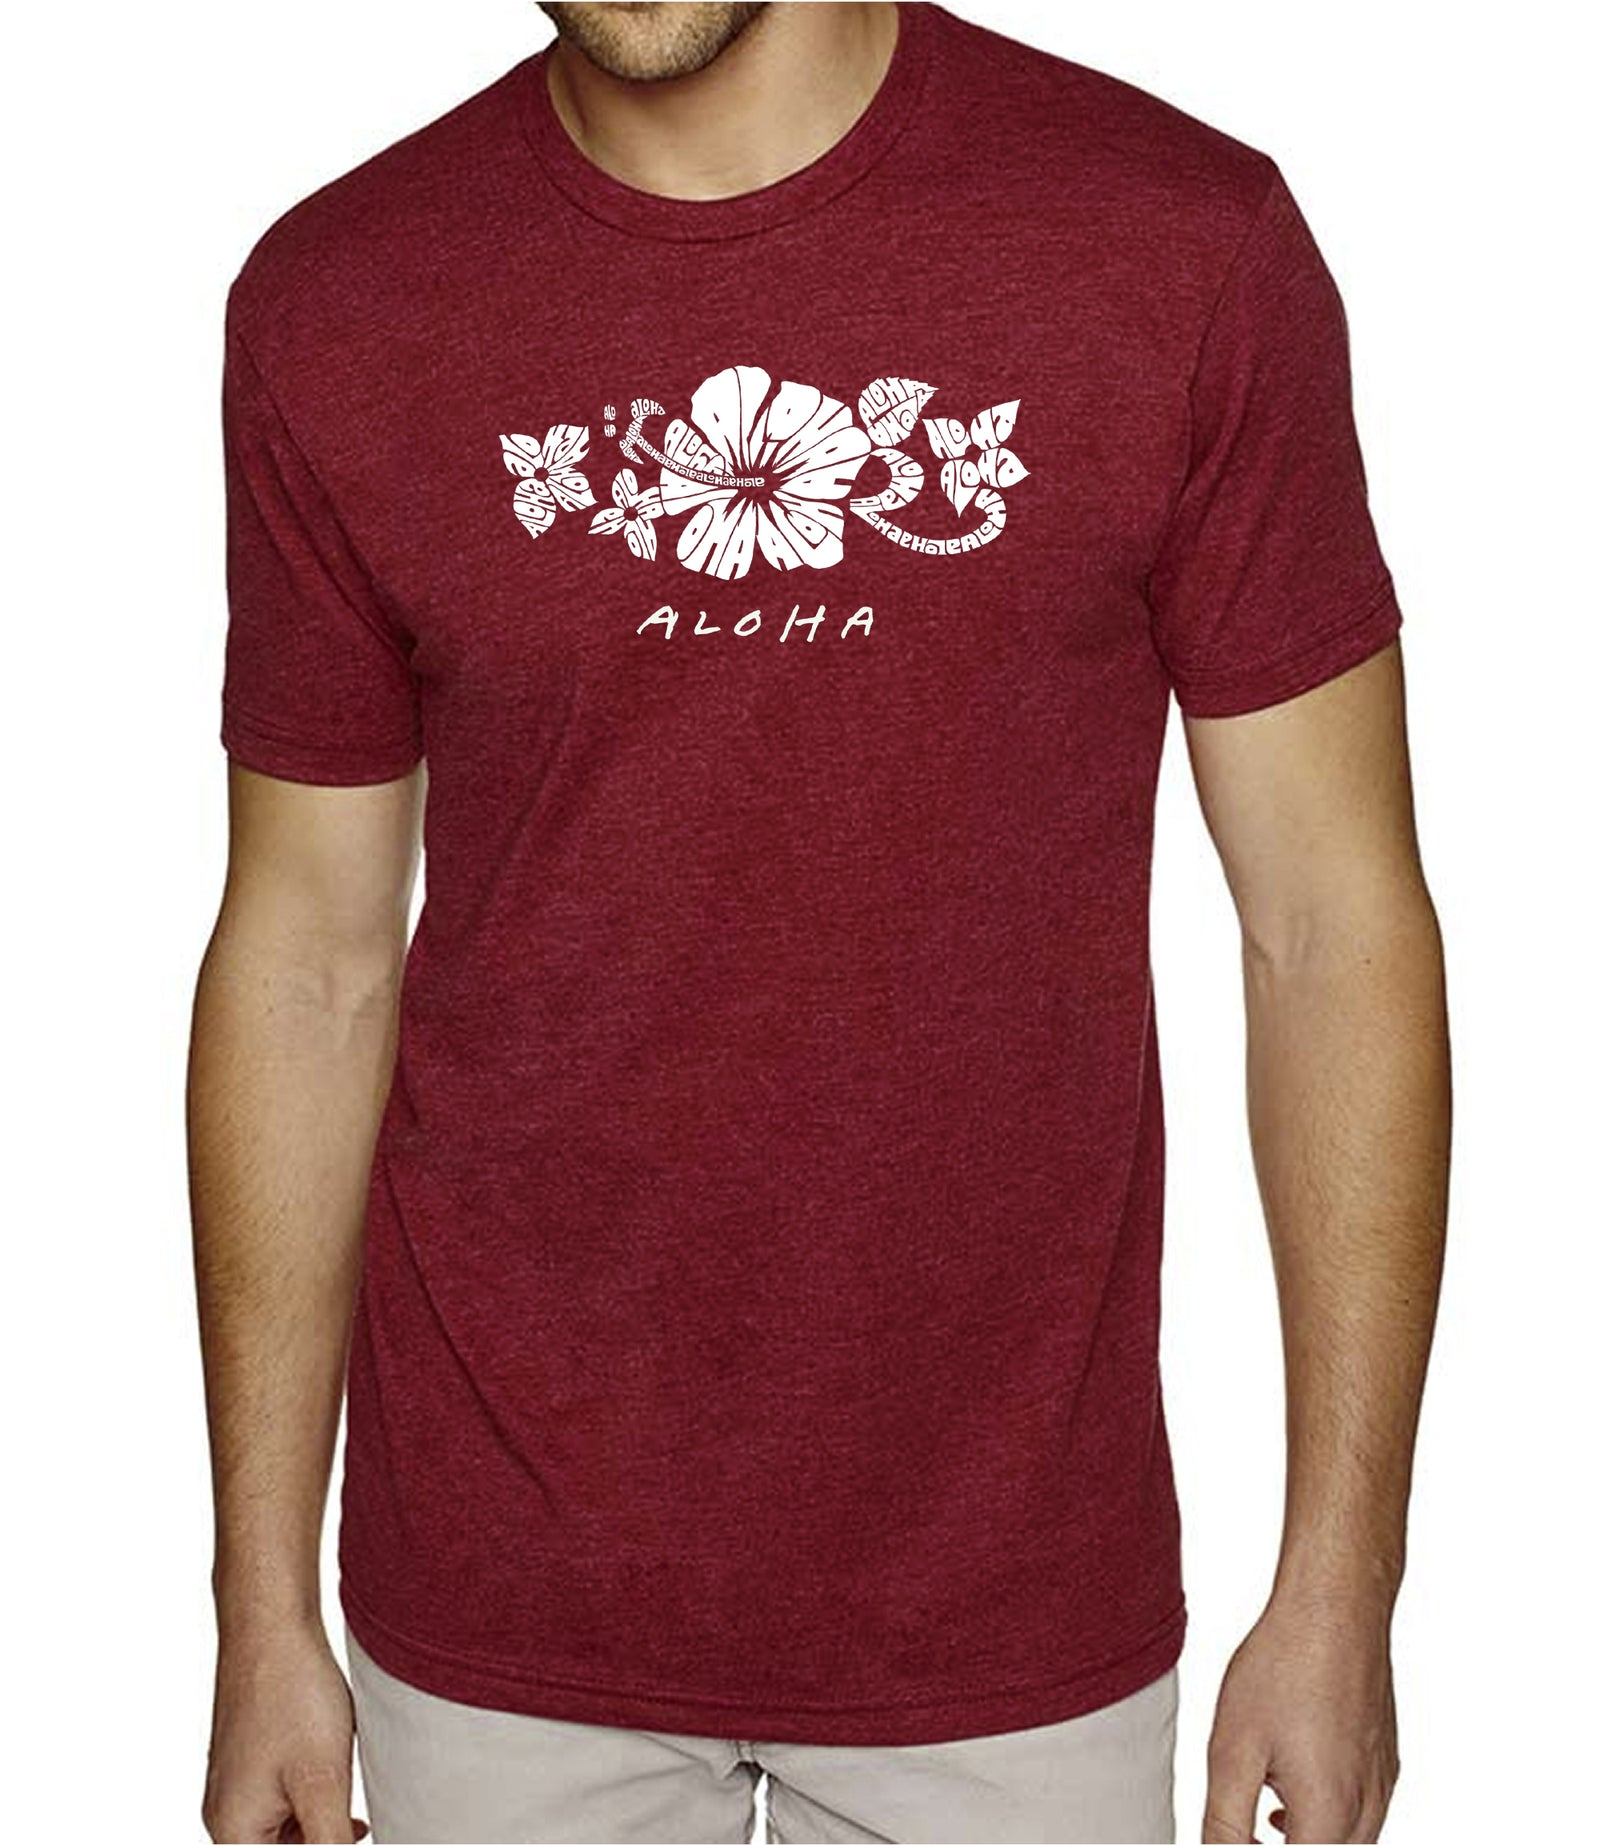 Men's Premium Blend Word Art T-shirt - ALOHA